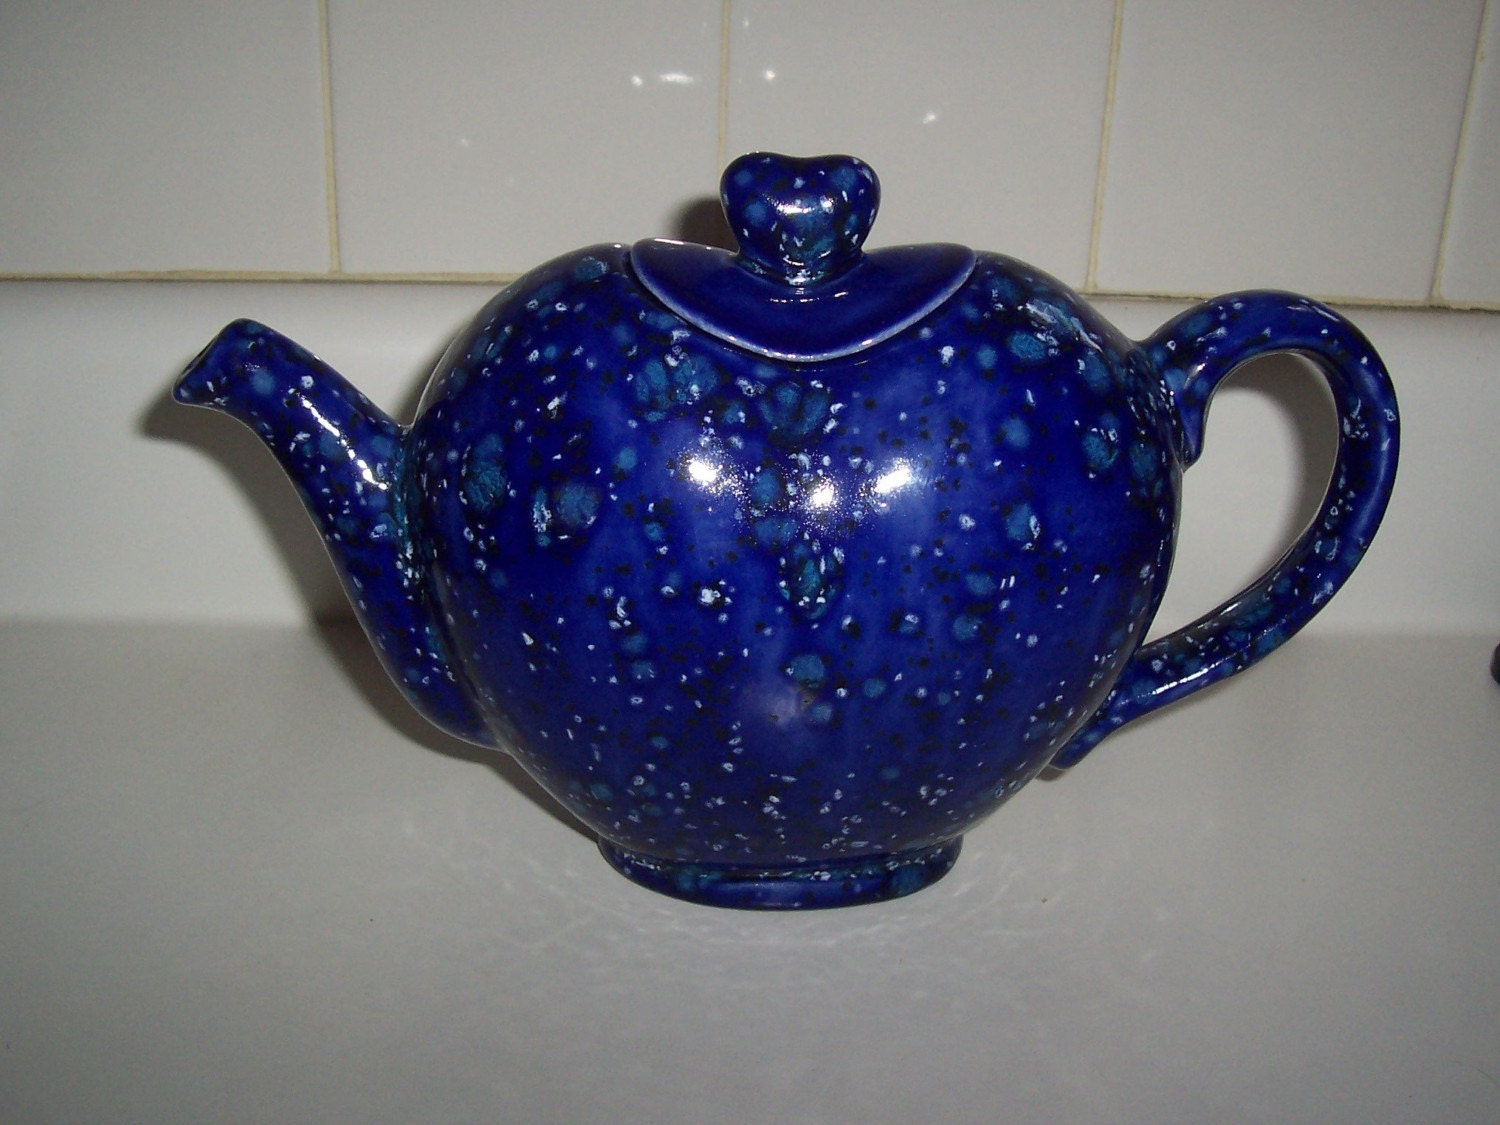 Handmade Ceramic Heart Shaped Teapot Splattered Cobalt Blue